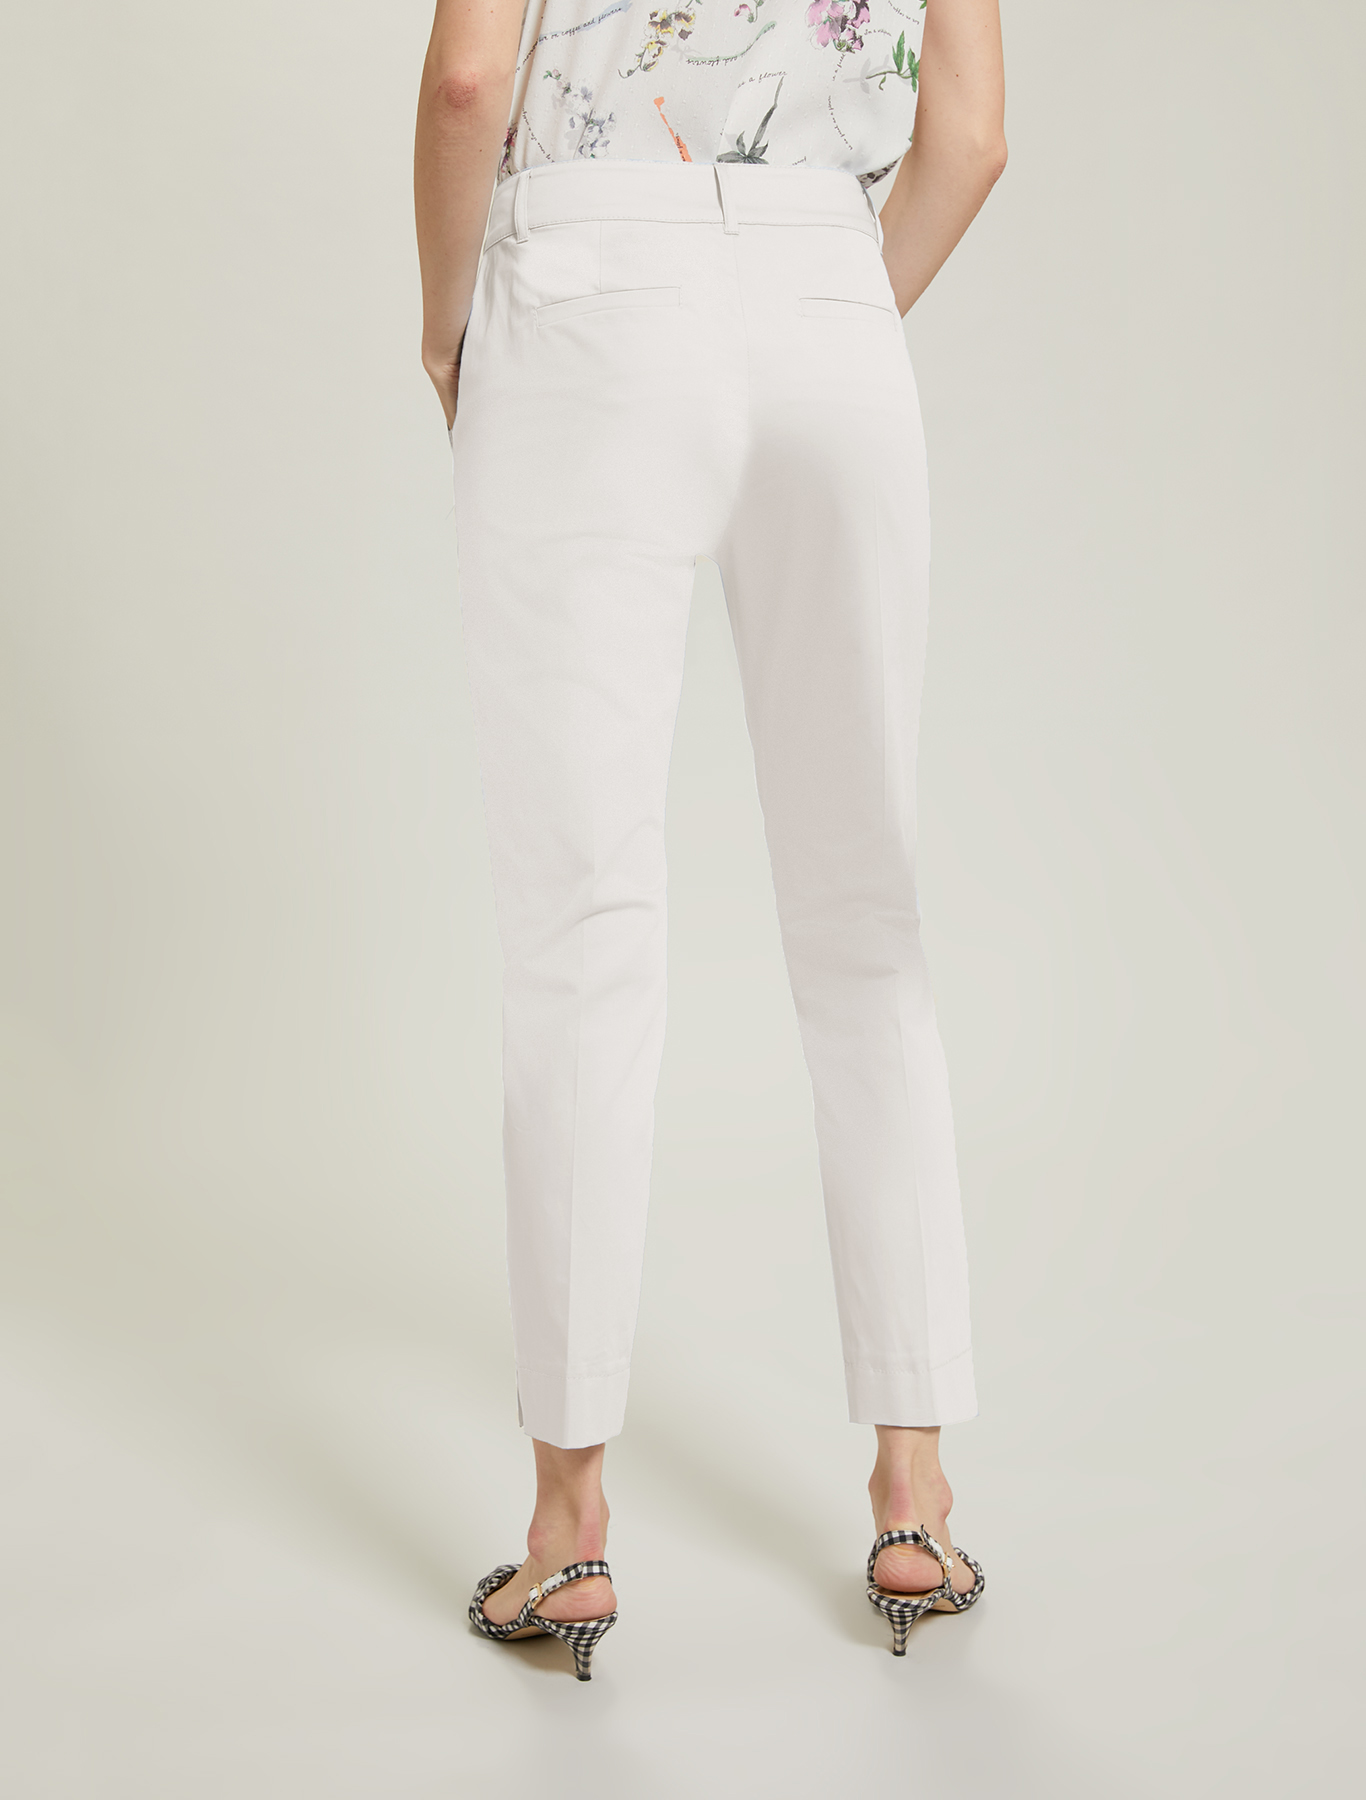 Slim cotton satin trousers - white - pennyblack